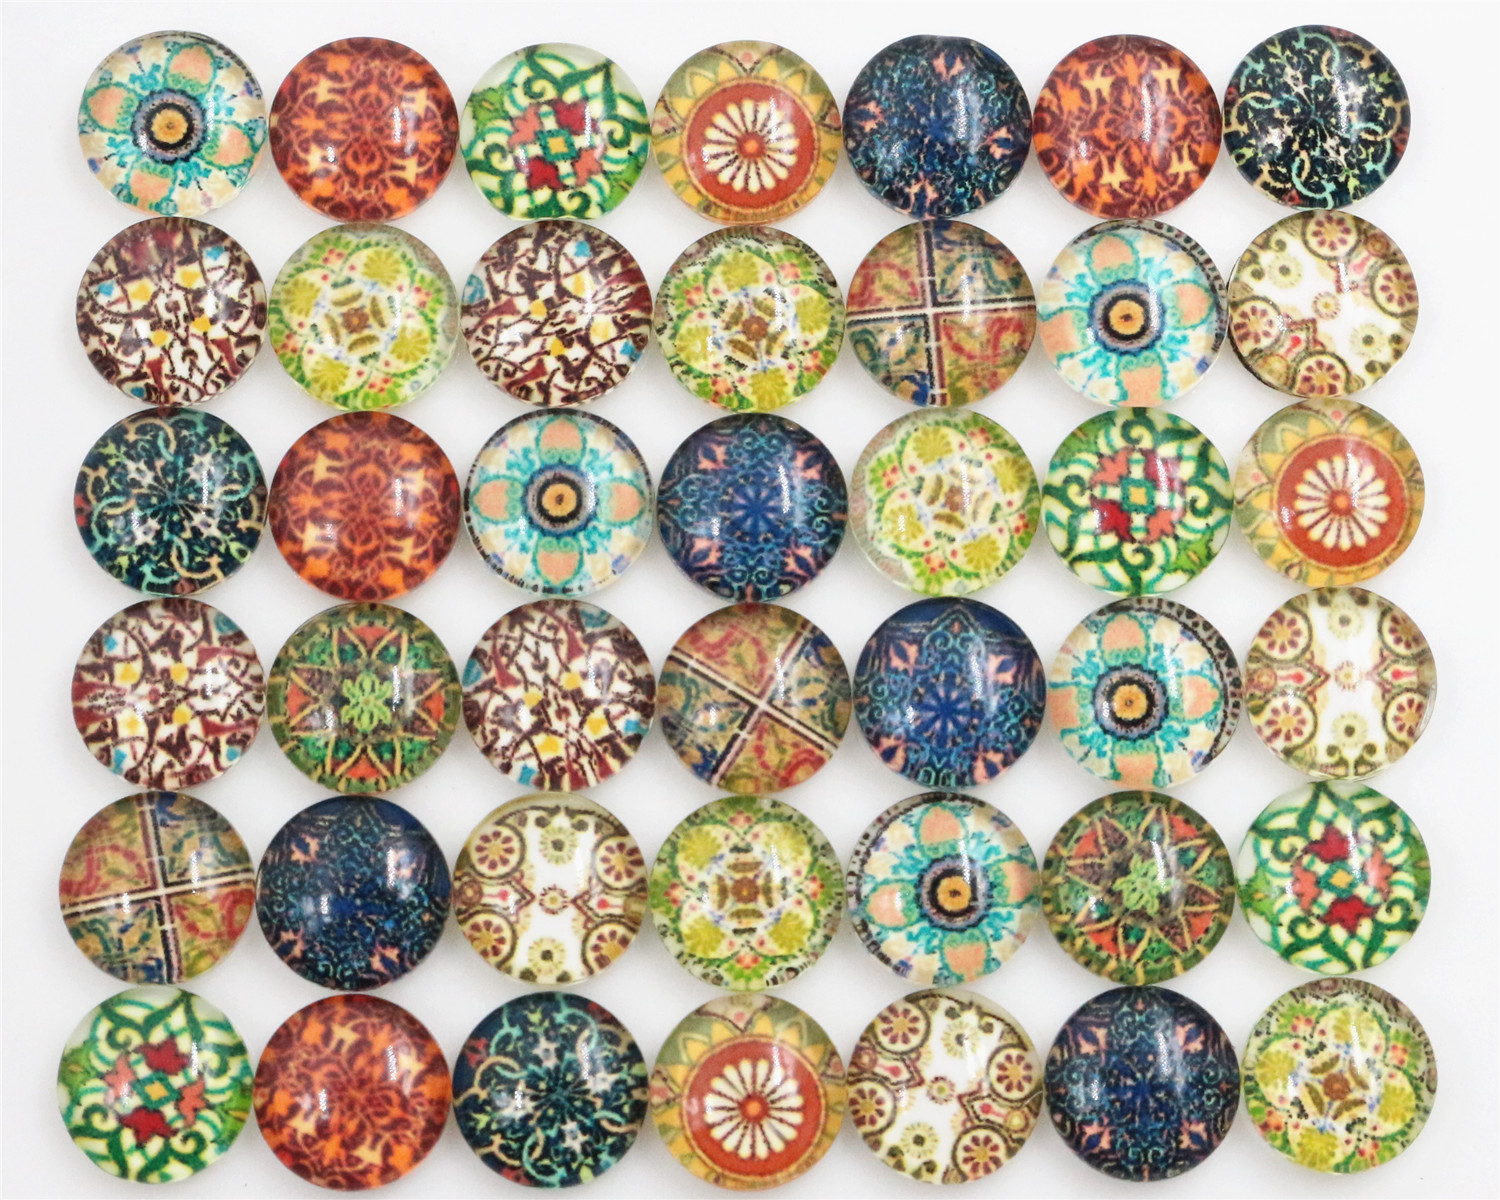 New Fashion Hot Sale 50pcs 8mm Mixed Colors Totem Flower Style Handmade Photo Glass Cabochons-C7-42New Fashion Hot Sale 50pcs 8mm Mixed Colors Totem Flower Style Handmade Photo Glass Cabochons-C7-42